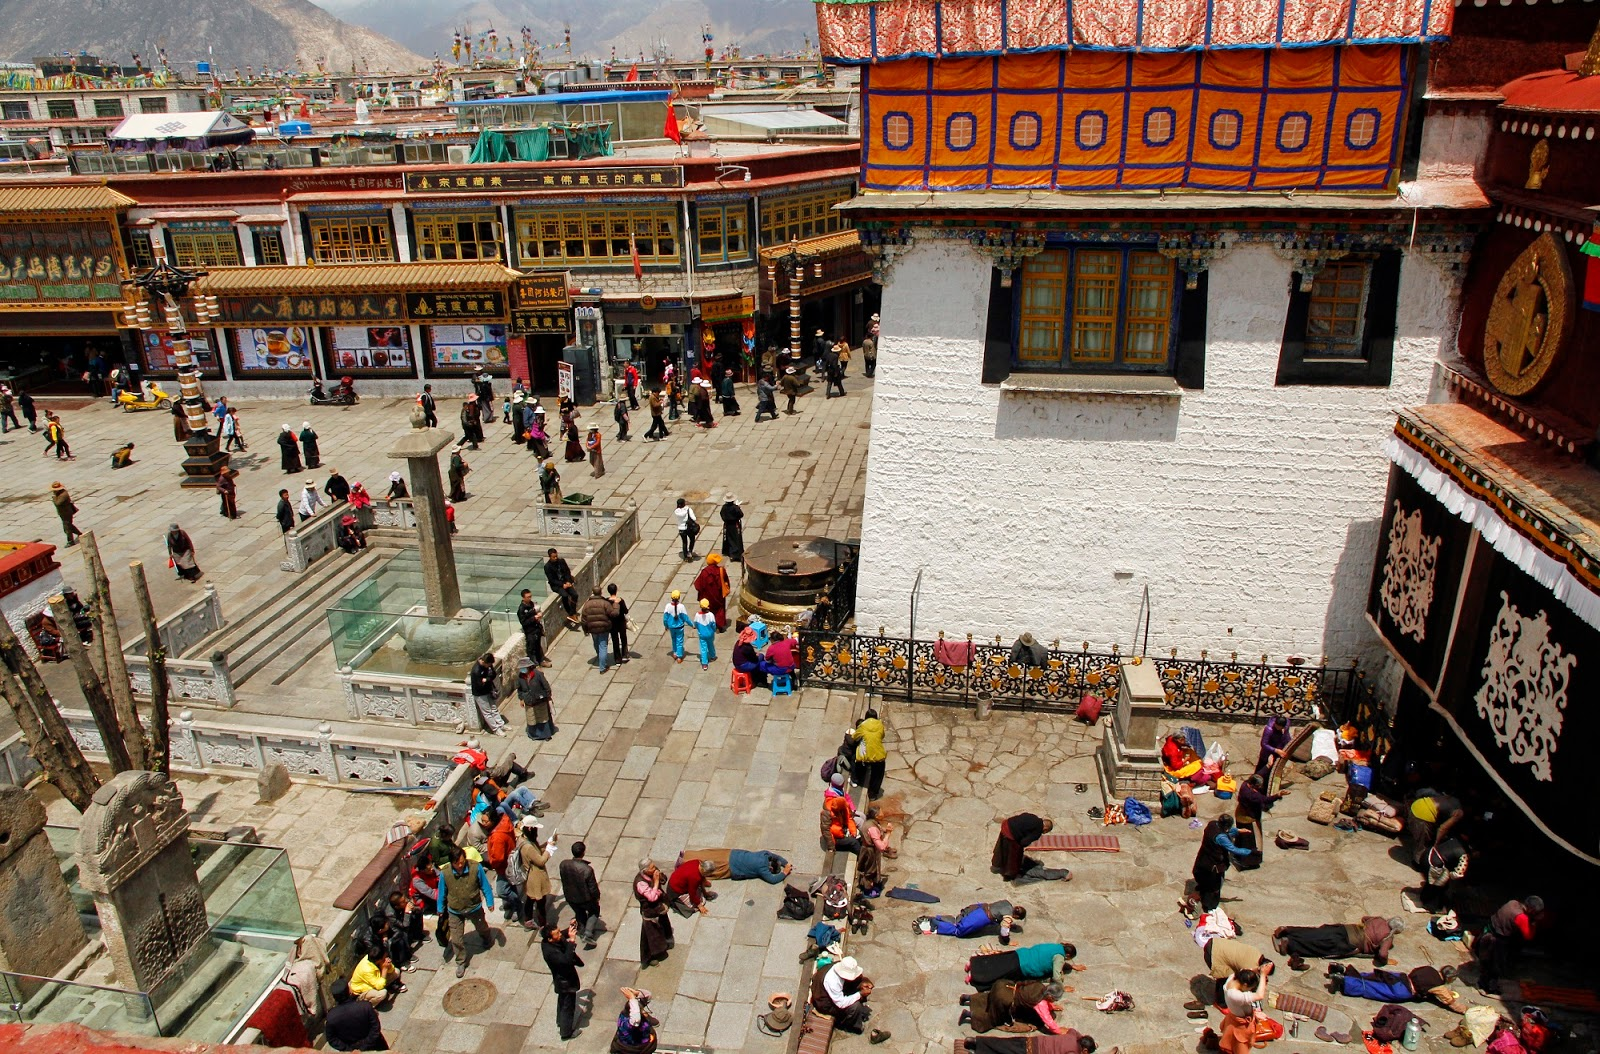 Entrance to the Jokhang Temple